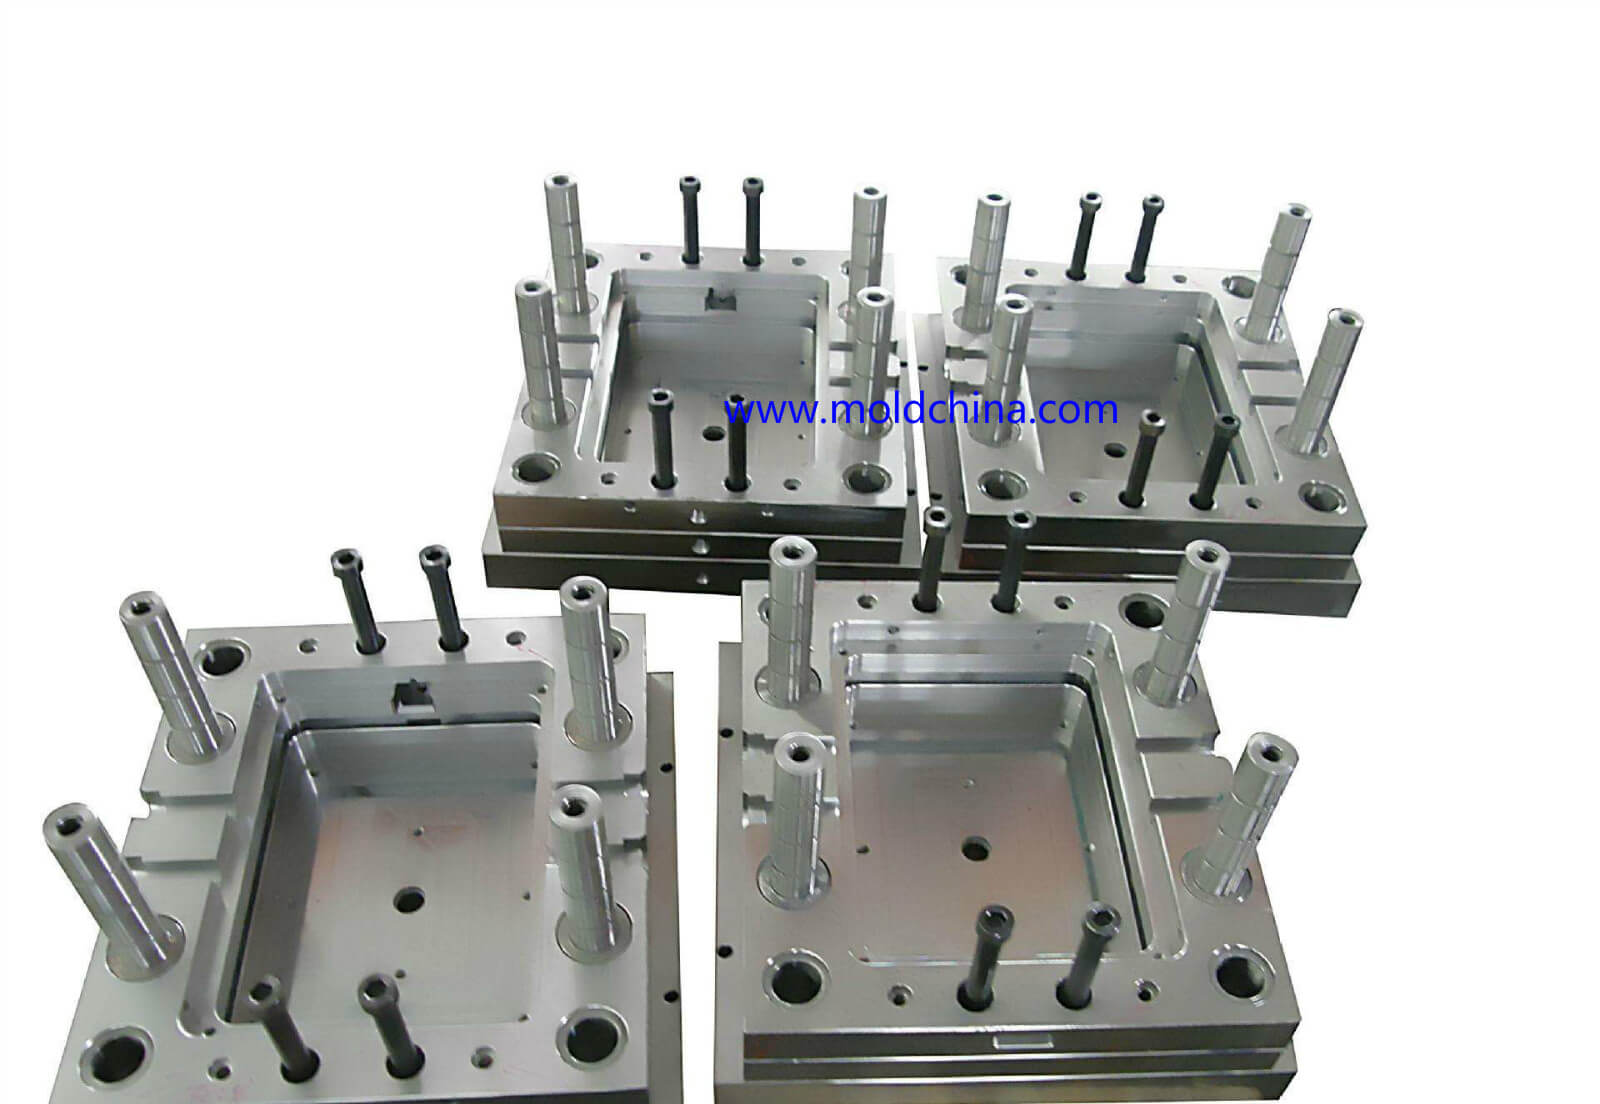 mold steels